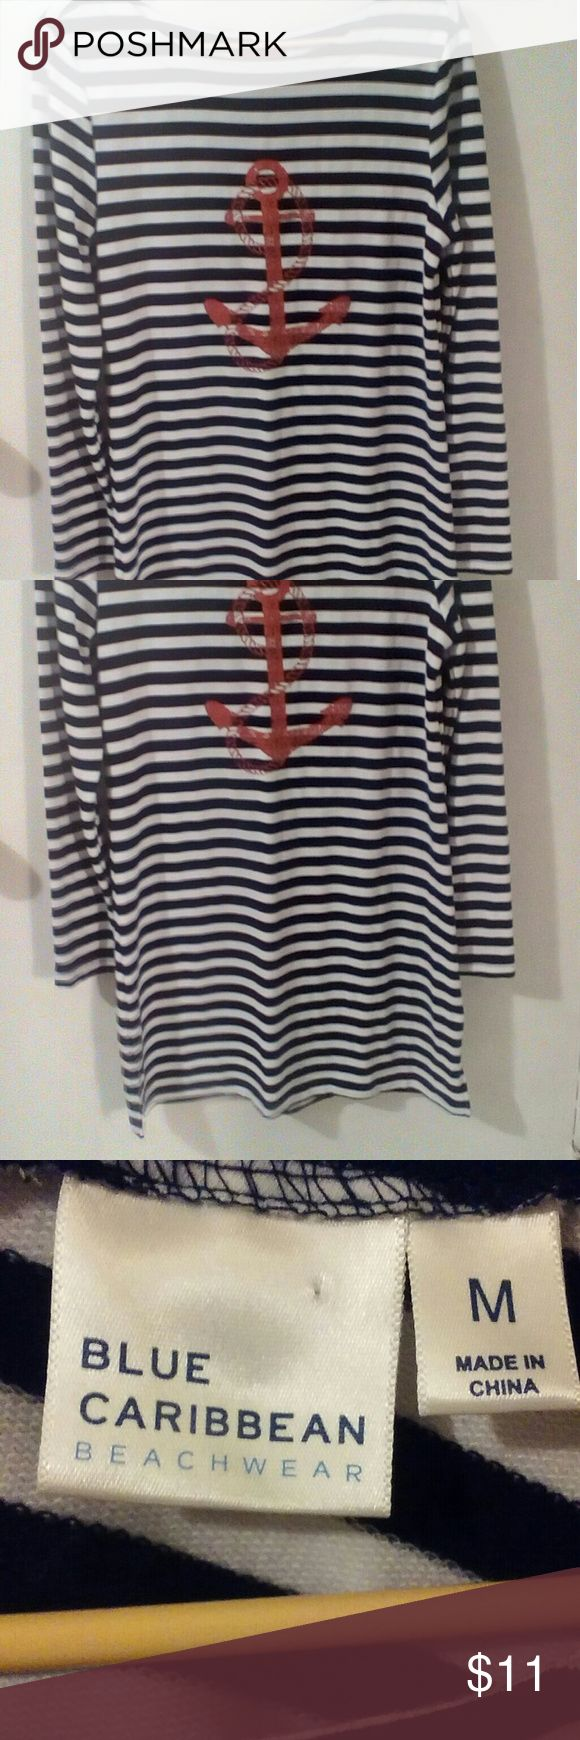 """Striped Dress with Anchor Blue Caribbean Beachwear black and white striped dress with a red anchor on the front. Wide scoop neck, long sleeves. Ties at the back of the neck with a red ribbon. 3"""" slits on either side. Dress is approx 35"""" long. Size M Blue Caribbean and Dresses Long Sleeve"""